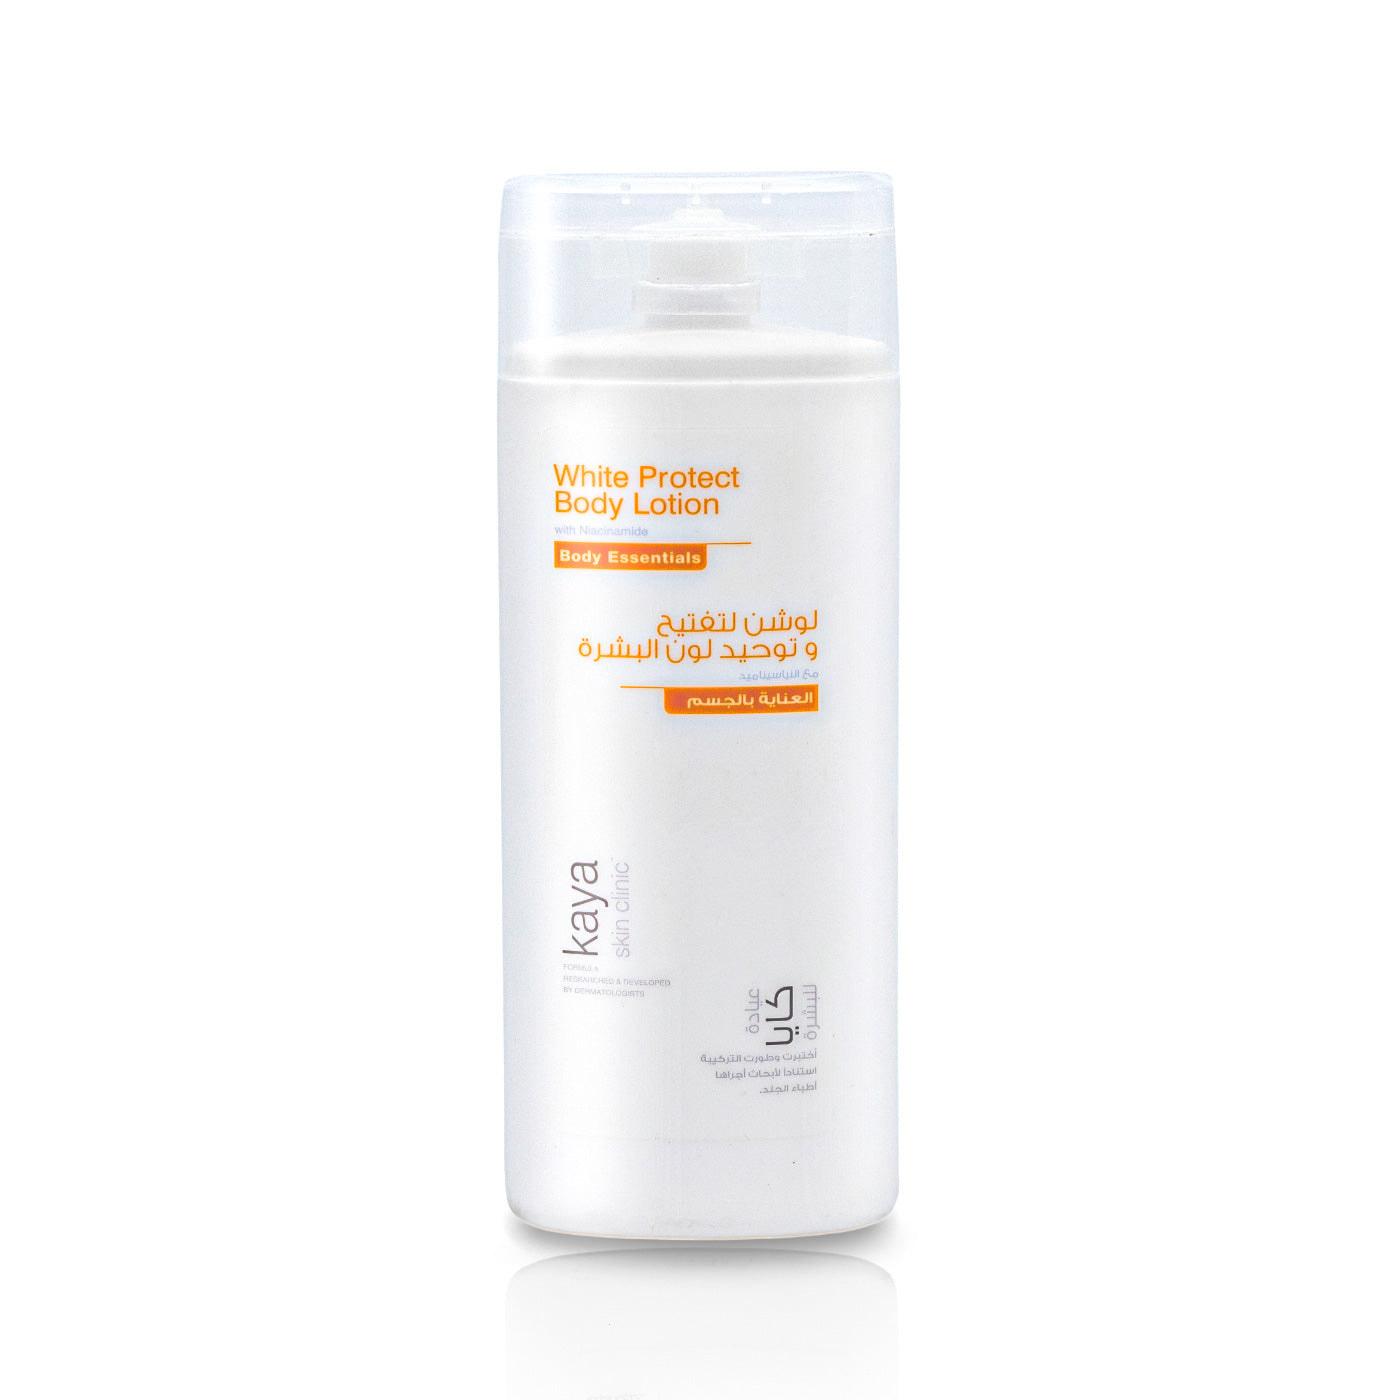 White Protect Body Lotion